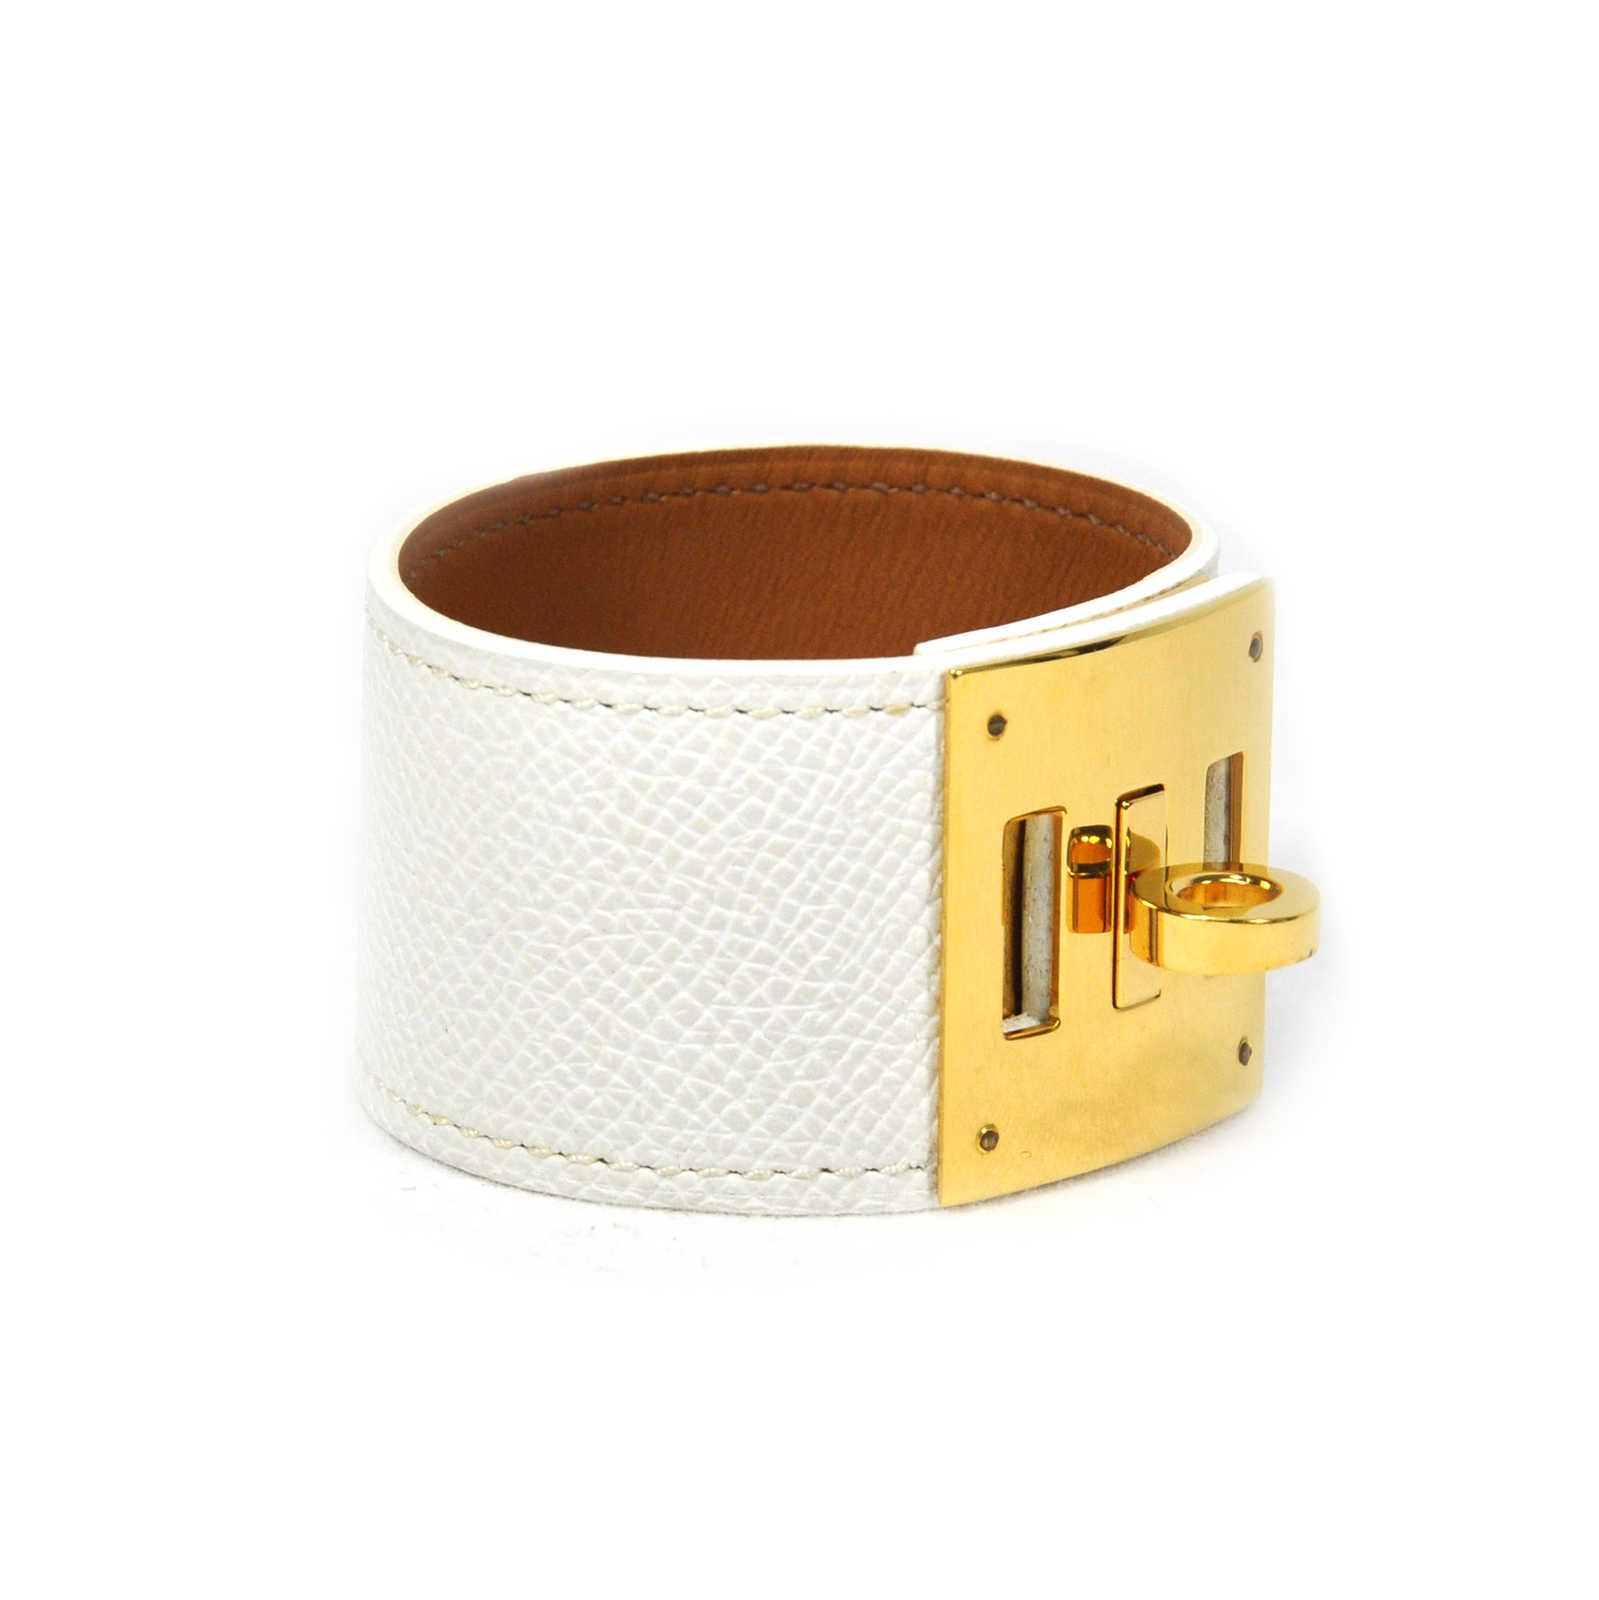 147945cf0568 ... Authentic Second Hand Hermès Kelly Dog Bracelet (PSS-304-00007) -  Thumbnail ...